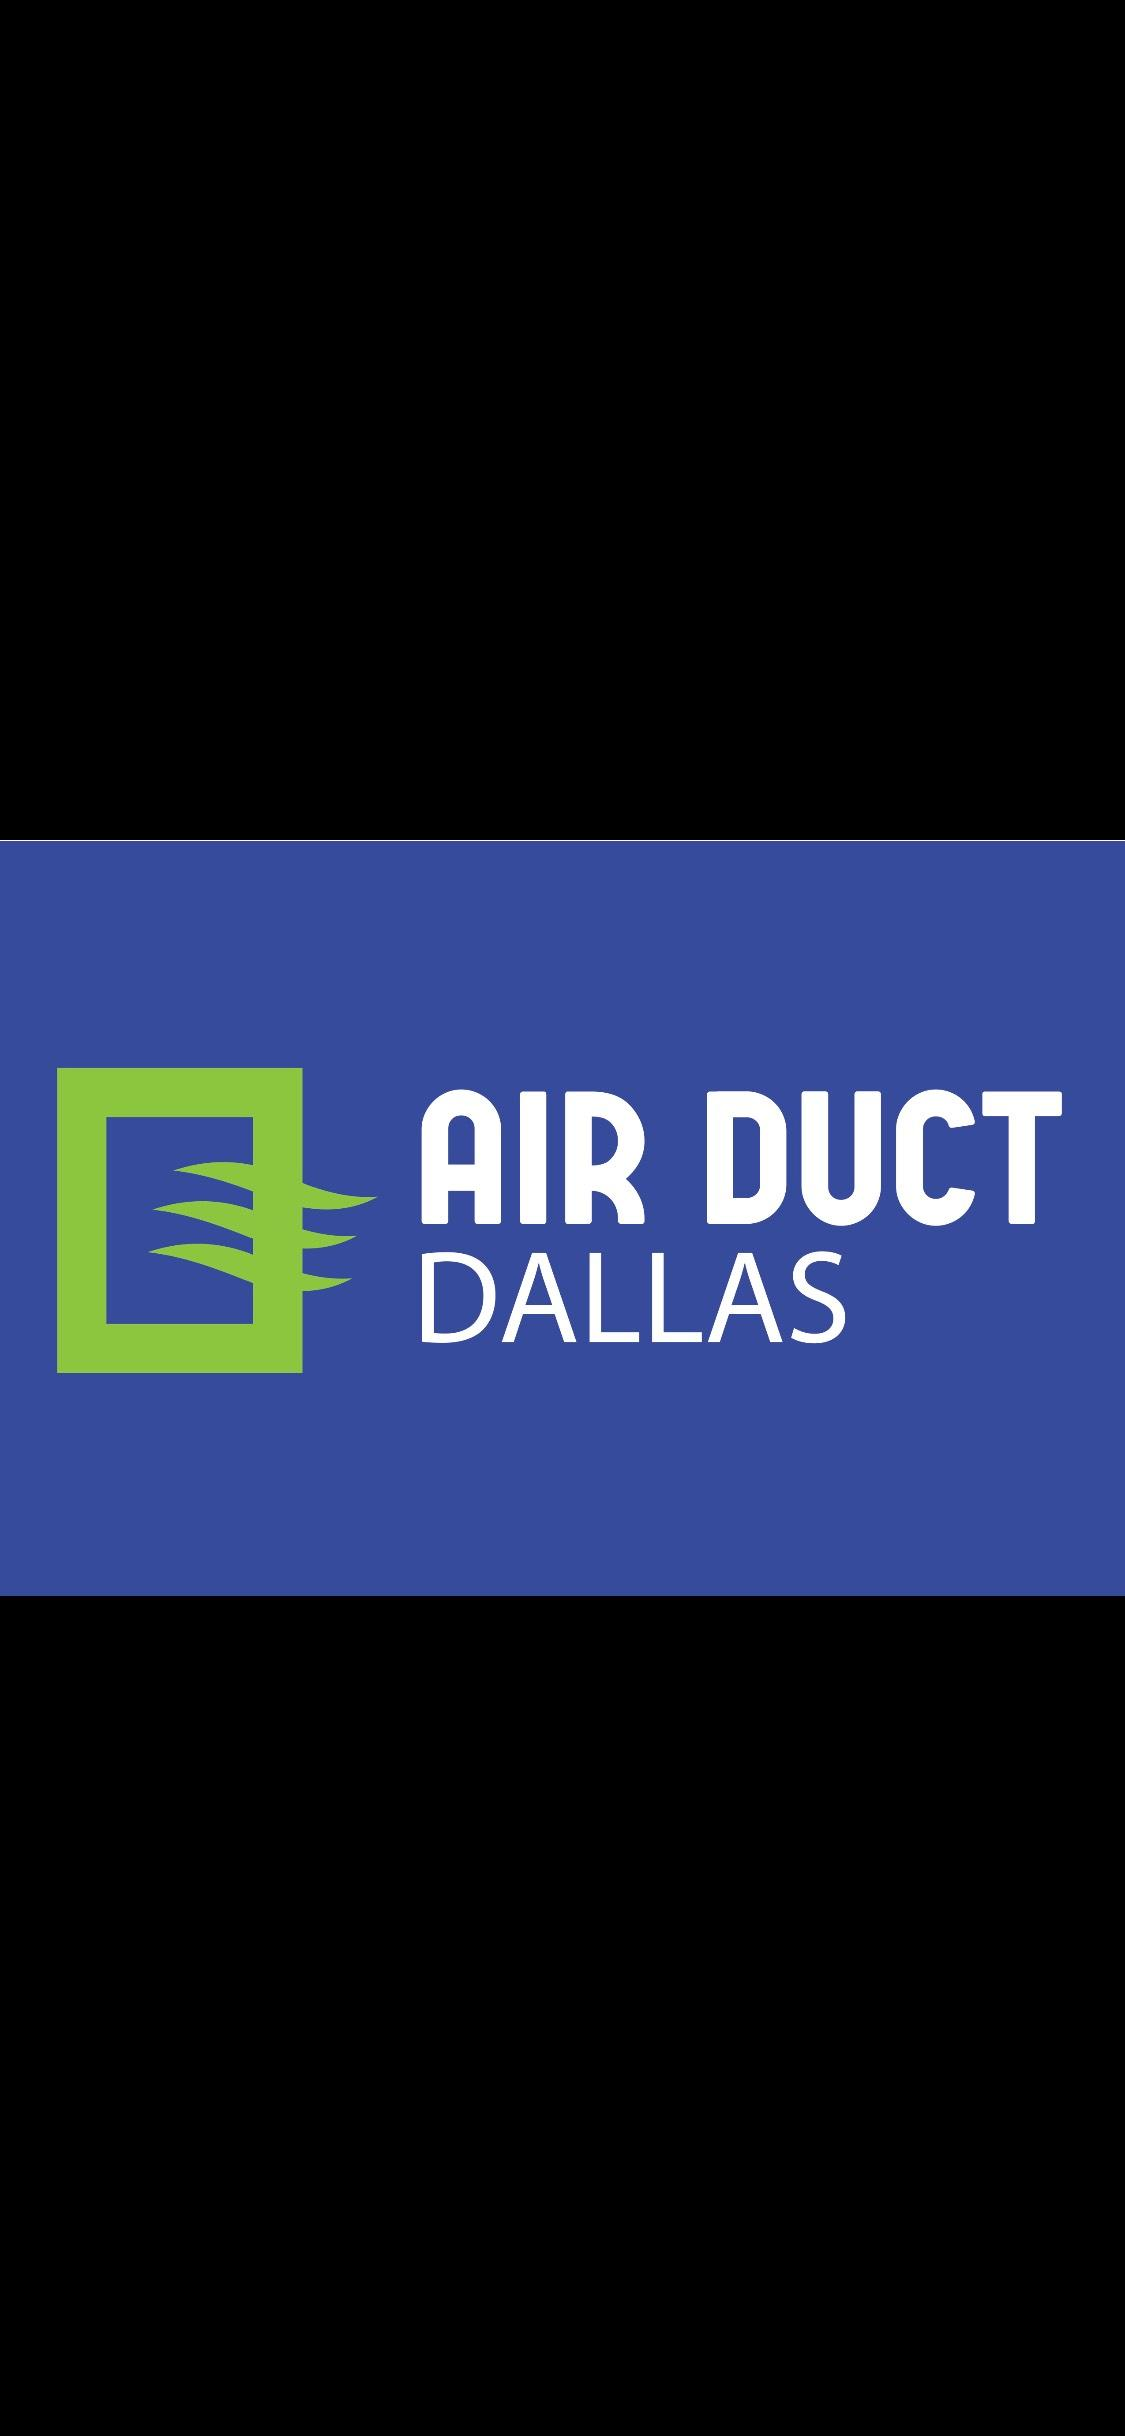 Air Duct Dallas image 0